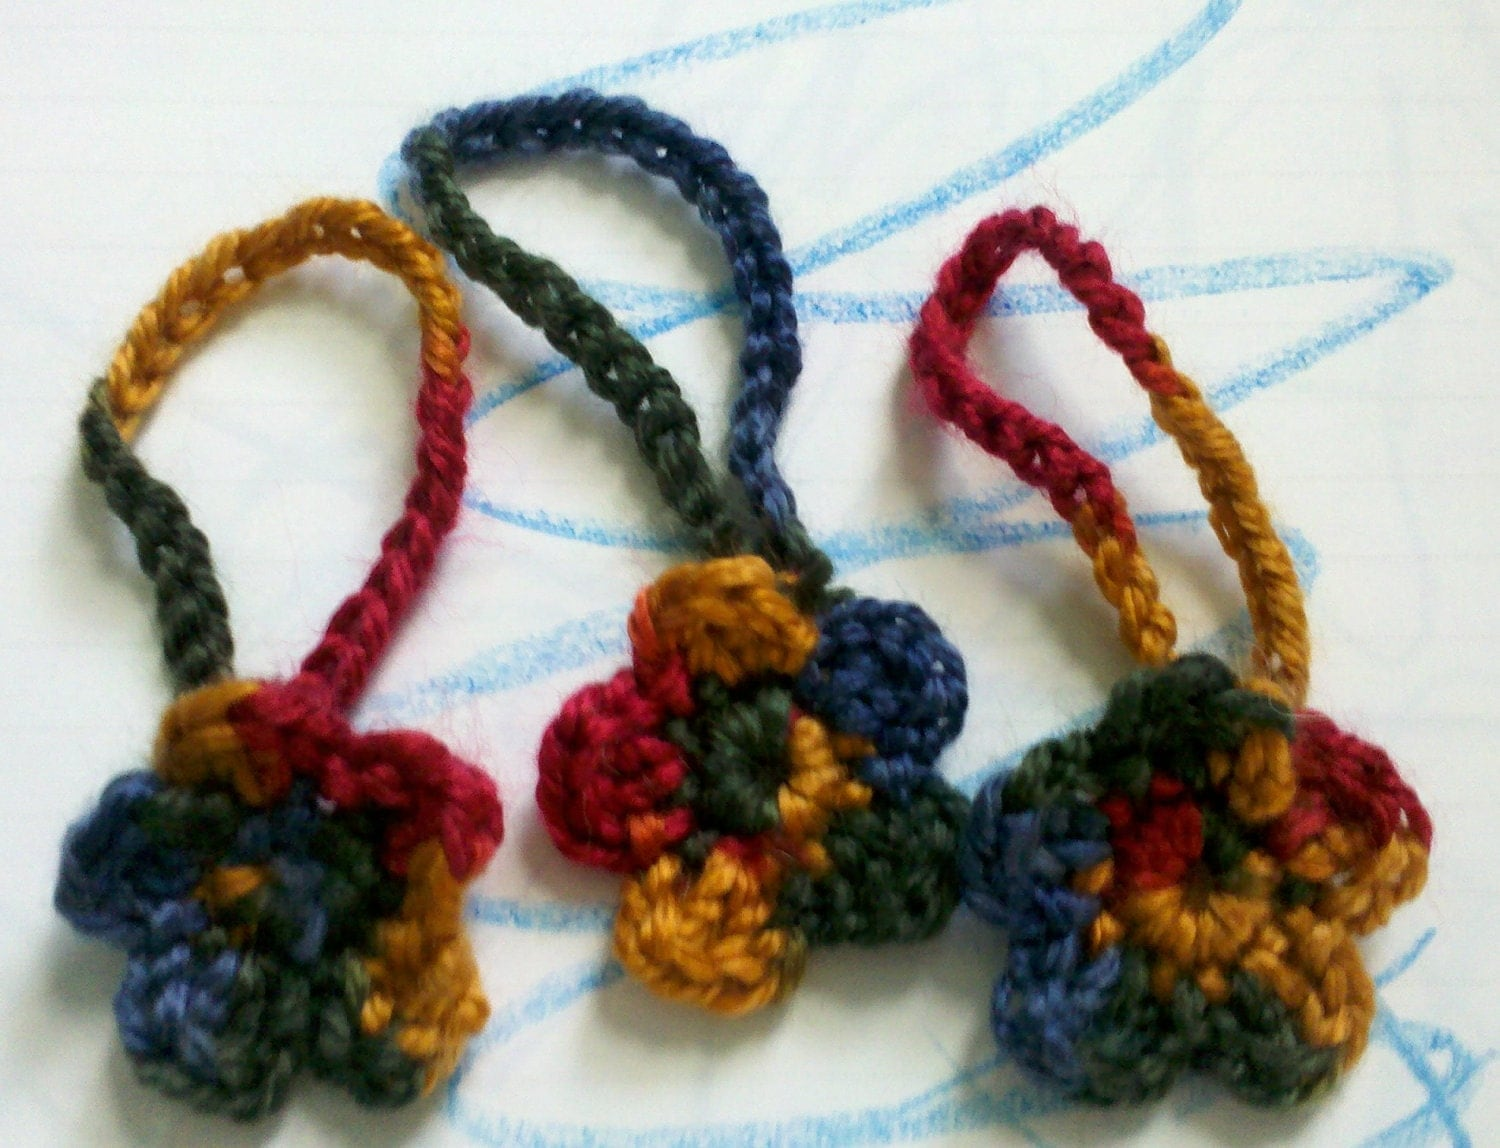 3 Small Crochet flowers great for Decorations, Ornaments, as Gift Tags, as gift wrap, Christmas holiday